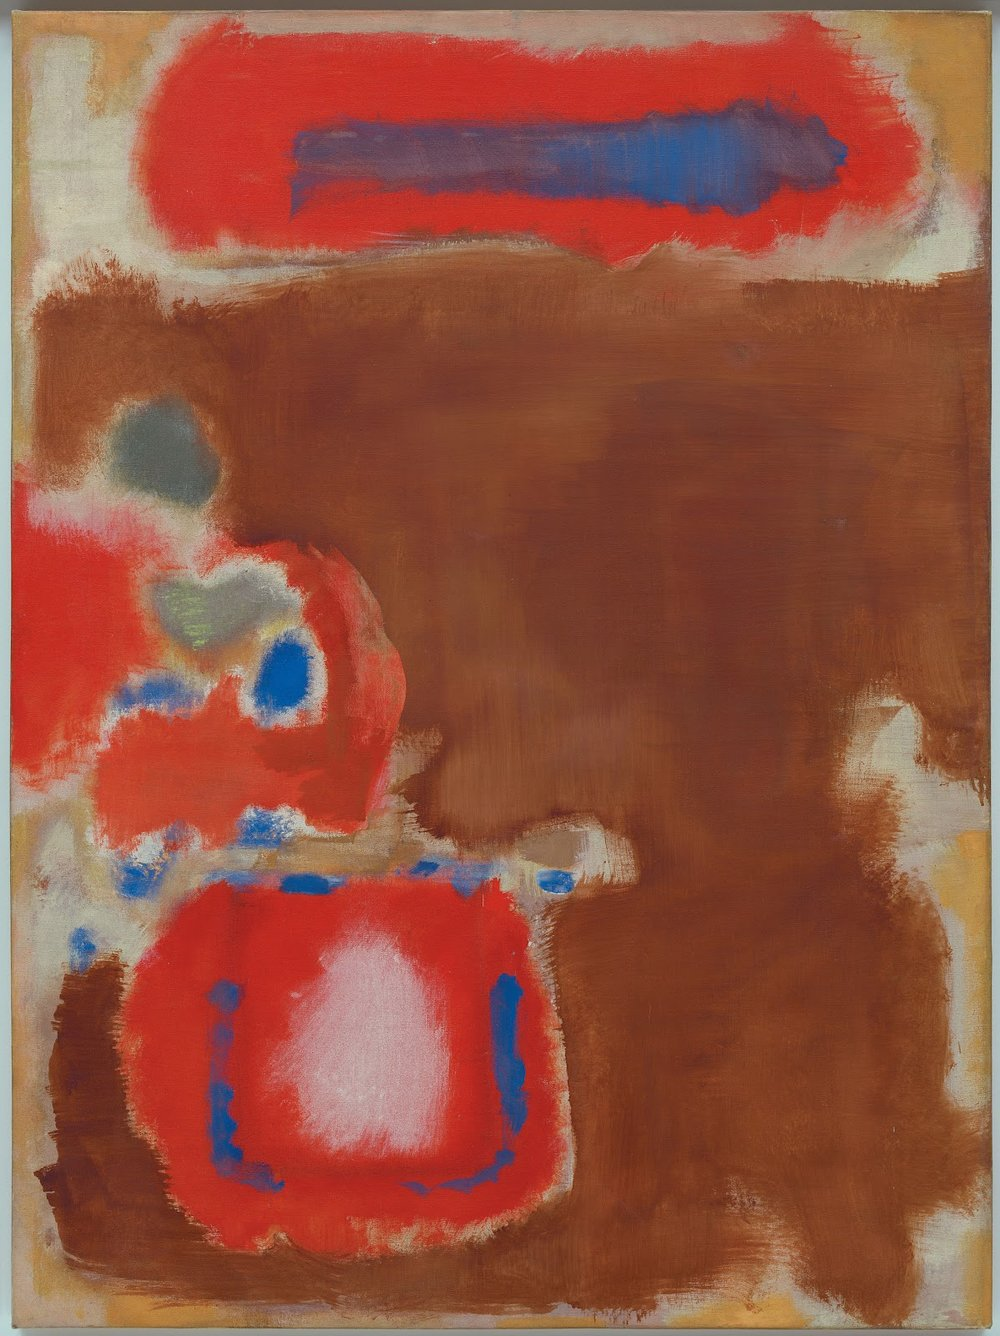 Untitled,  Mark Rothko, 1947. Solomon R Guggenheim Museum, New York